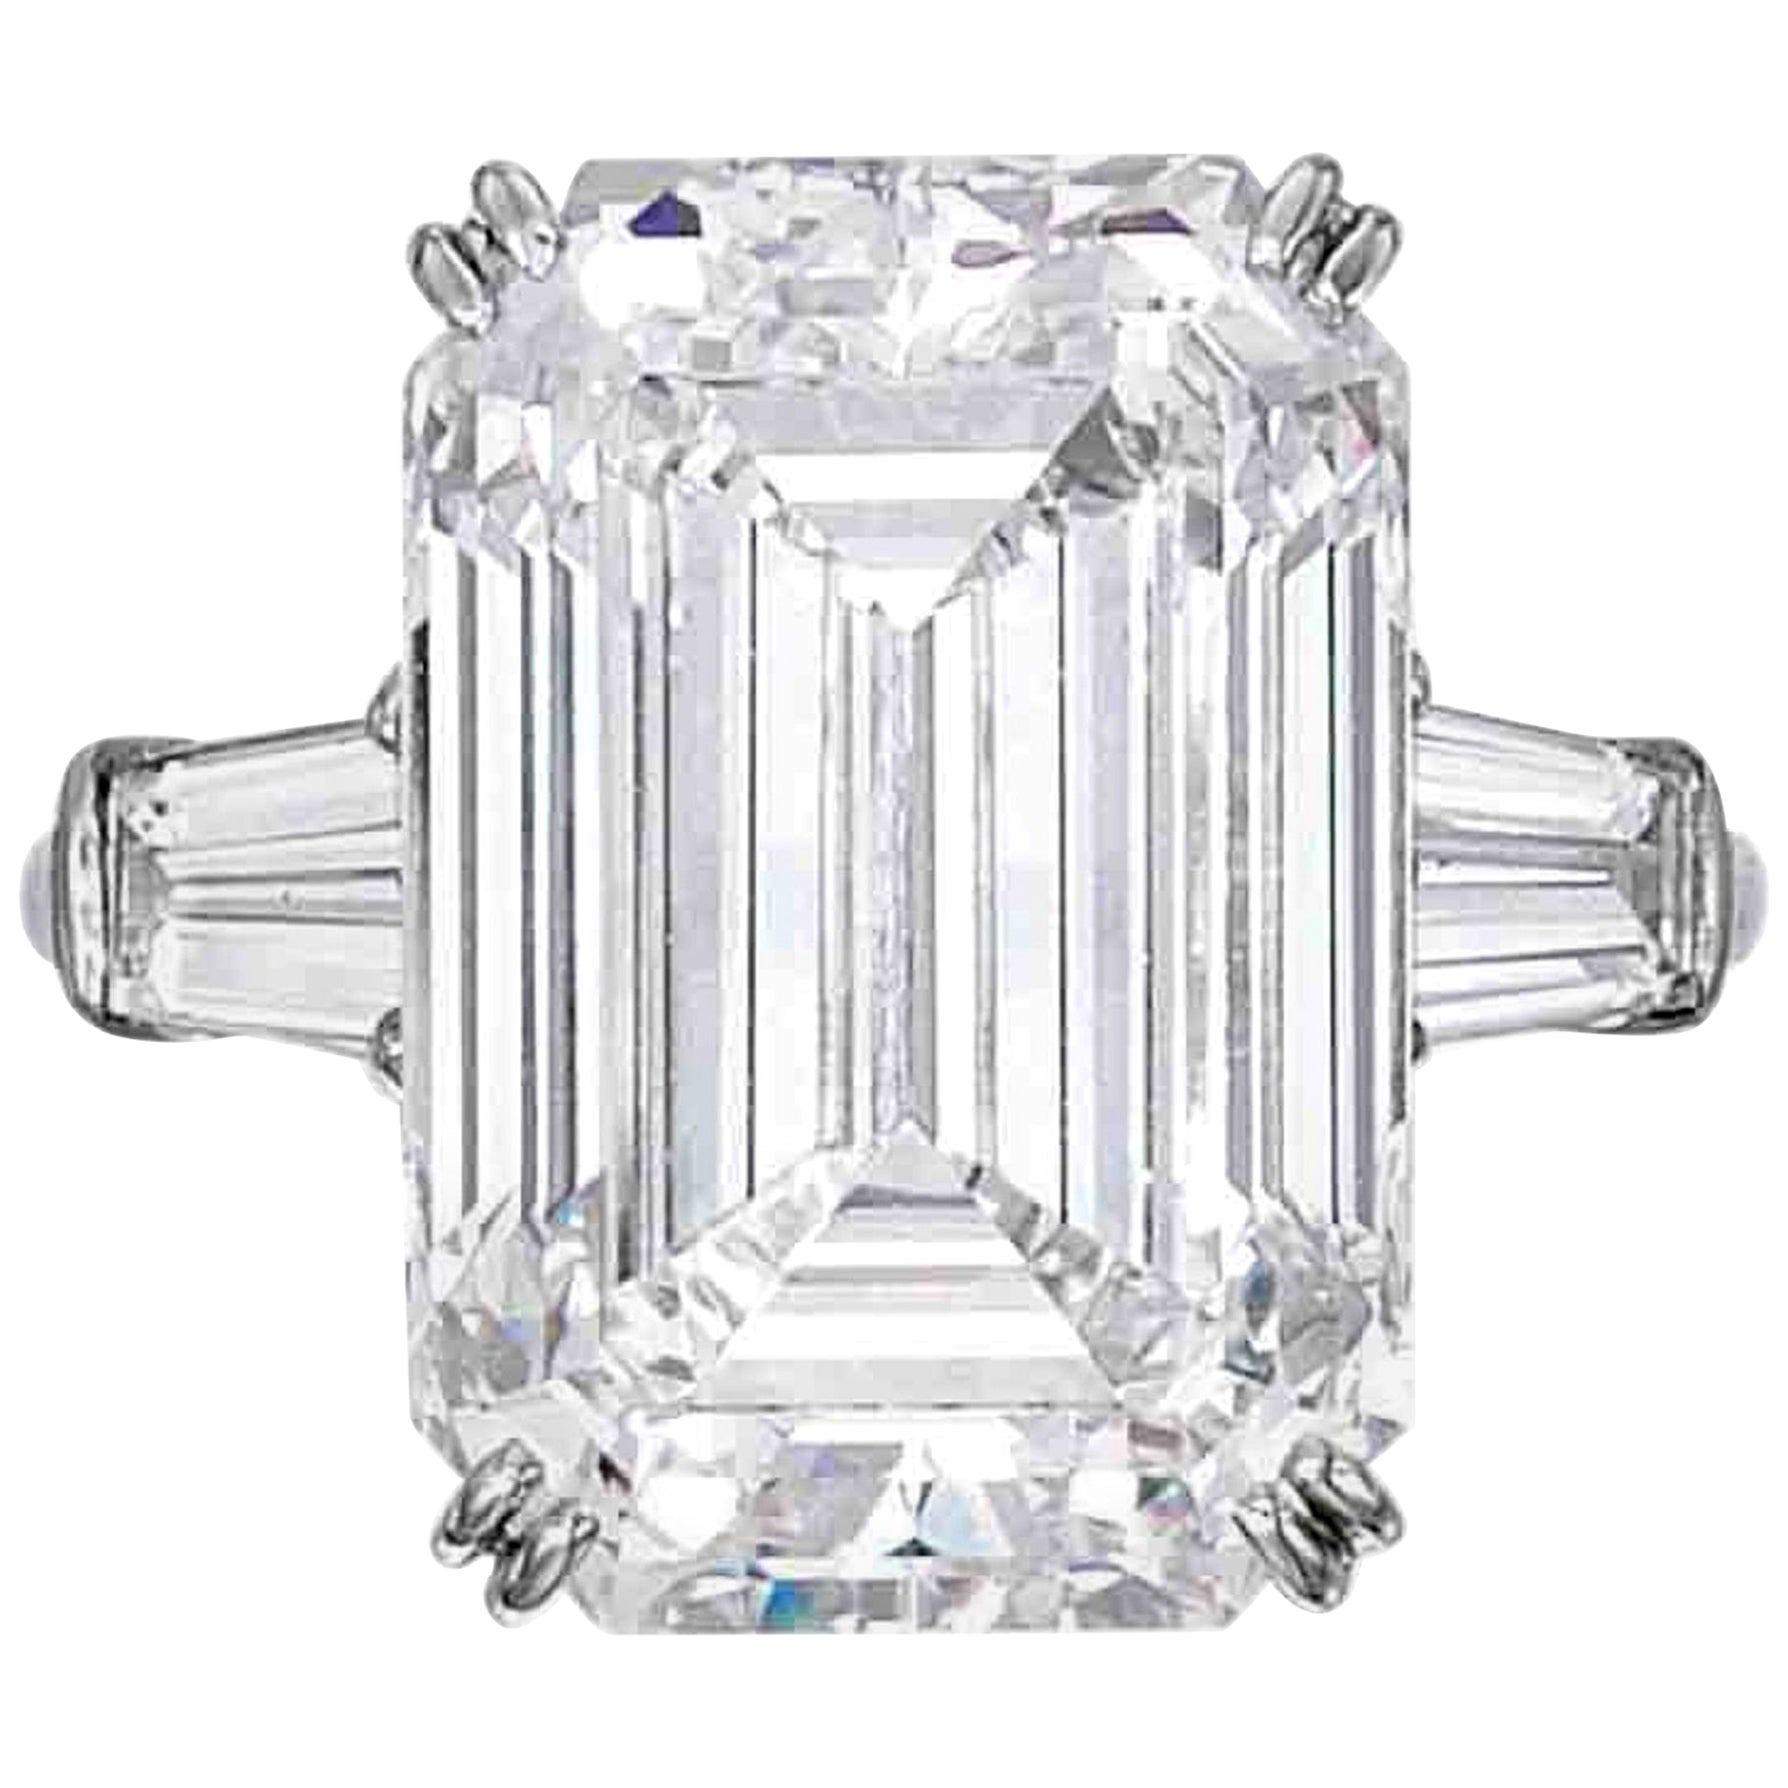 GIA Certified 7 Carat Emerald Cut Diamond Platinum Ring VS1 Clarity E Color